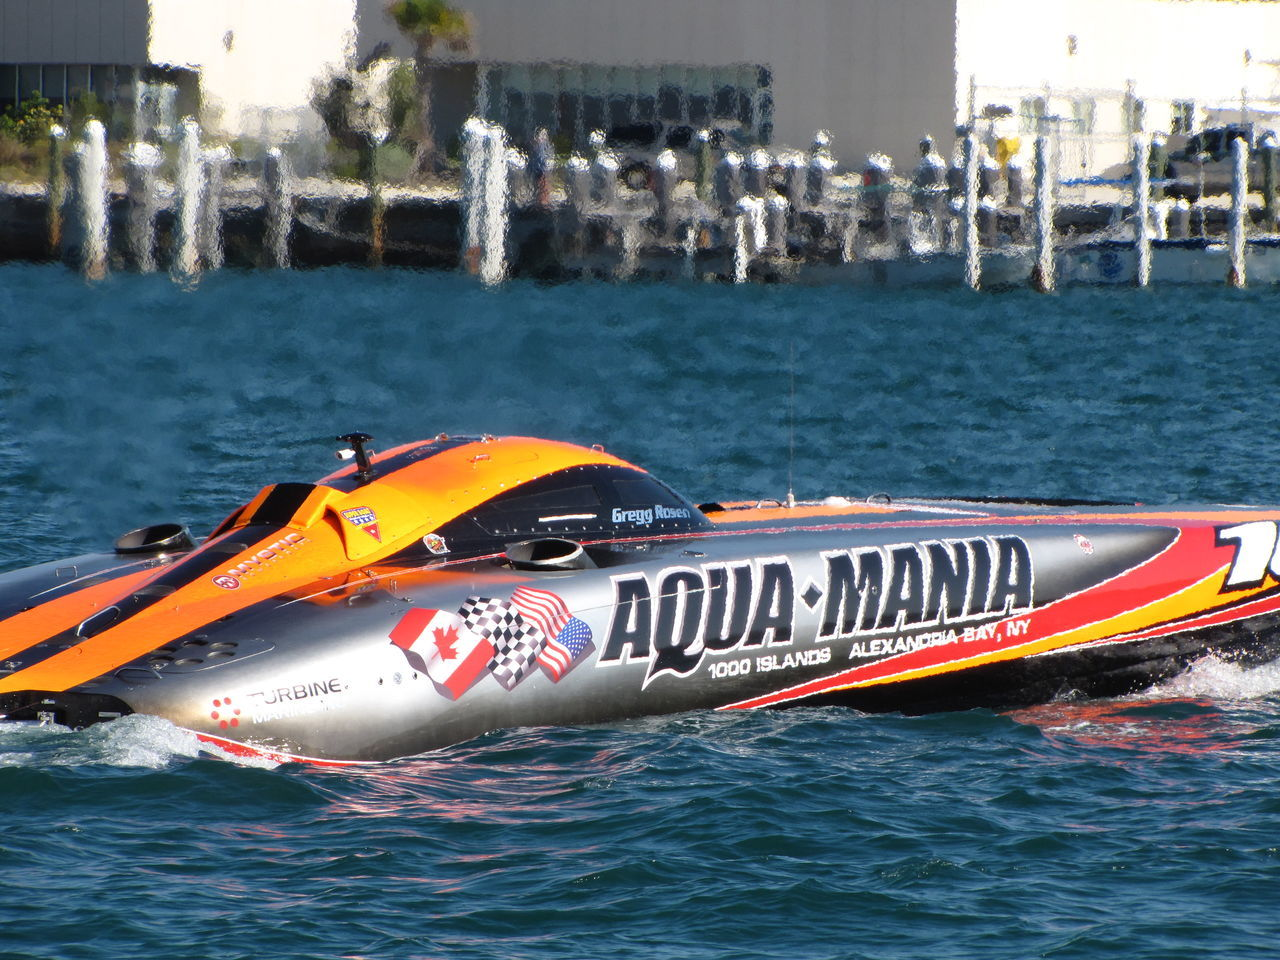 after the race Aqua Mania Fast Flags Harbor Outdoors Racing Silver Boat Speed Boat Speeding Warf Water Winner